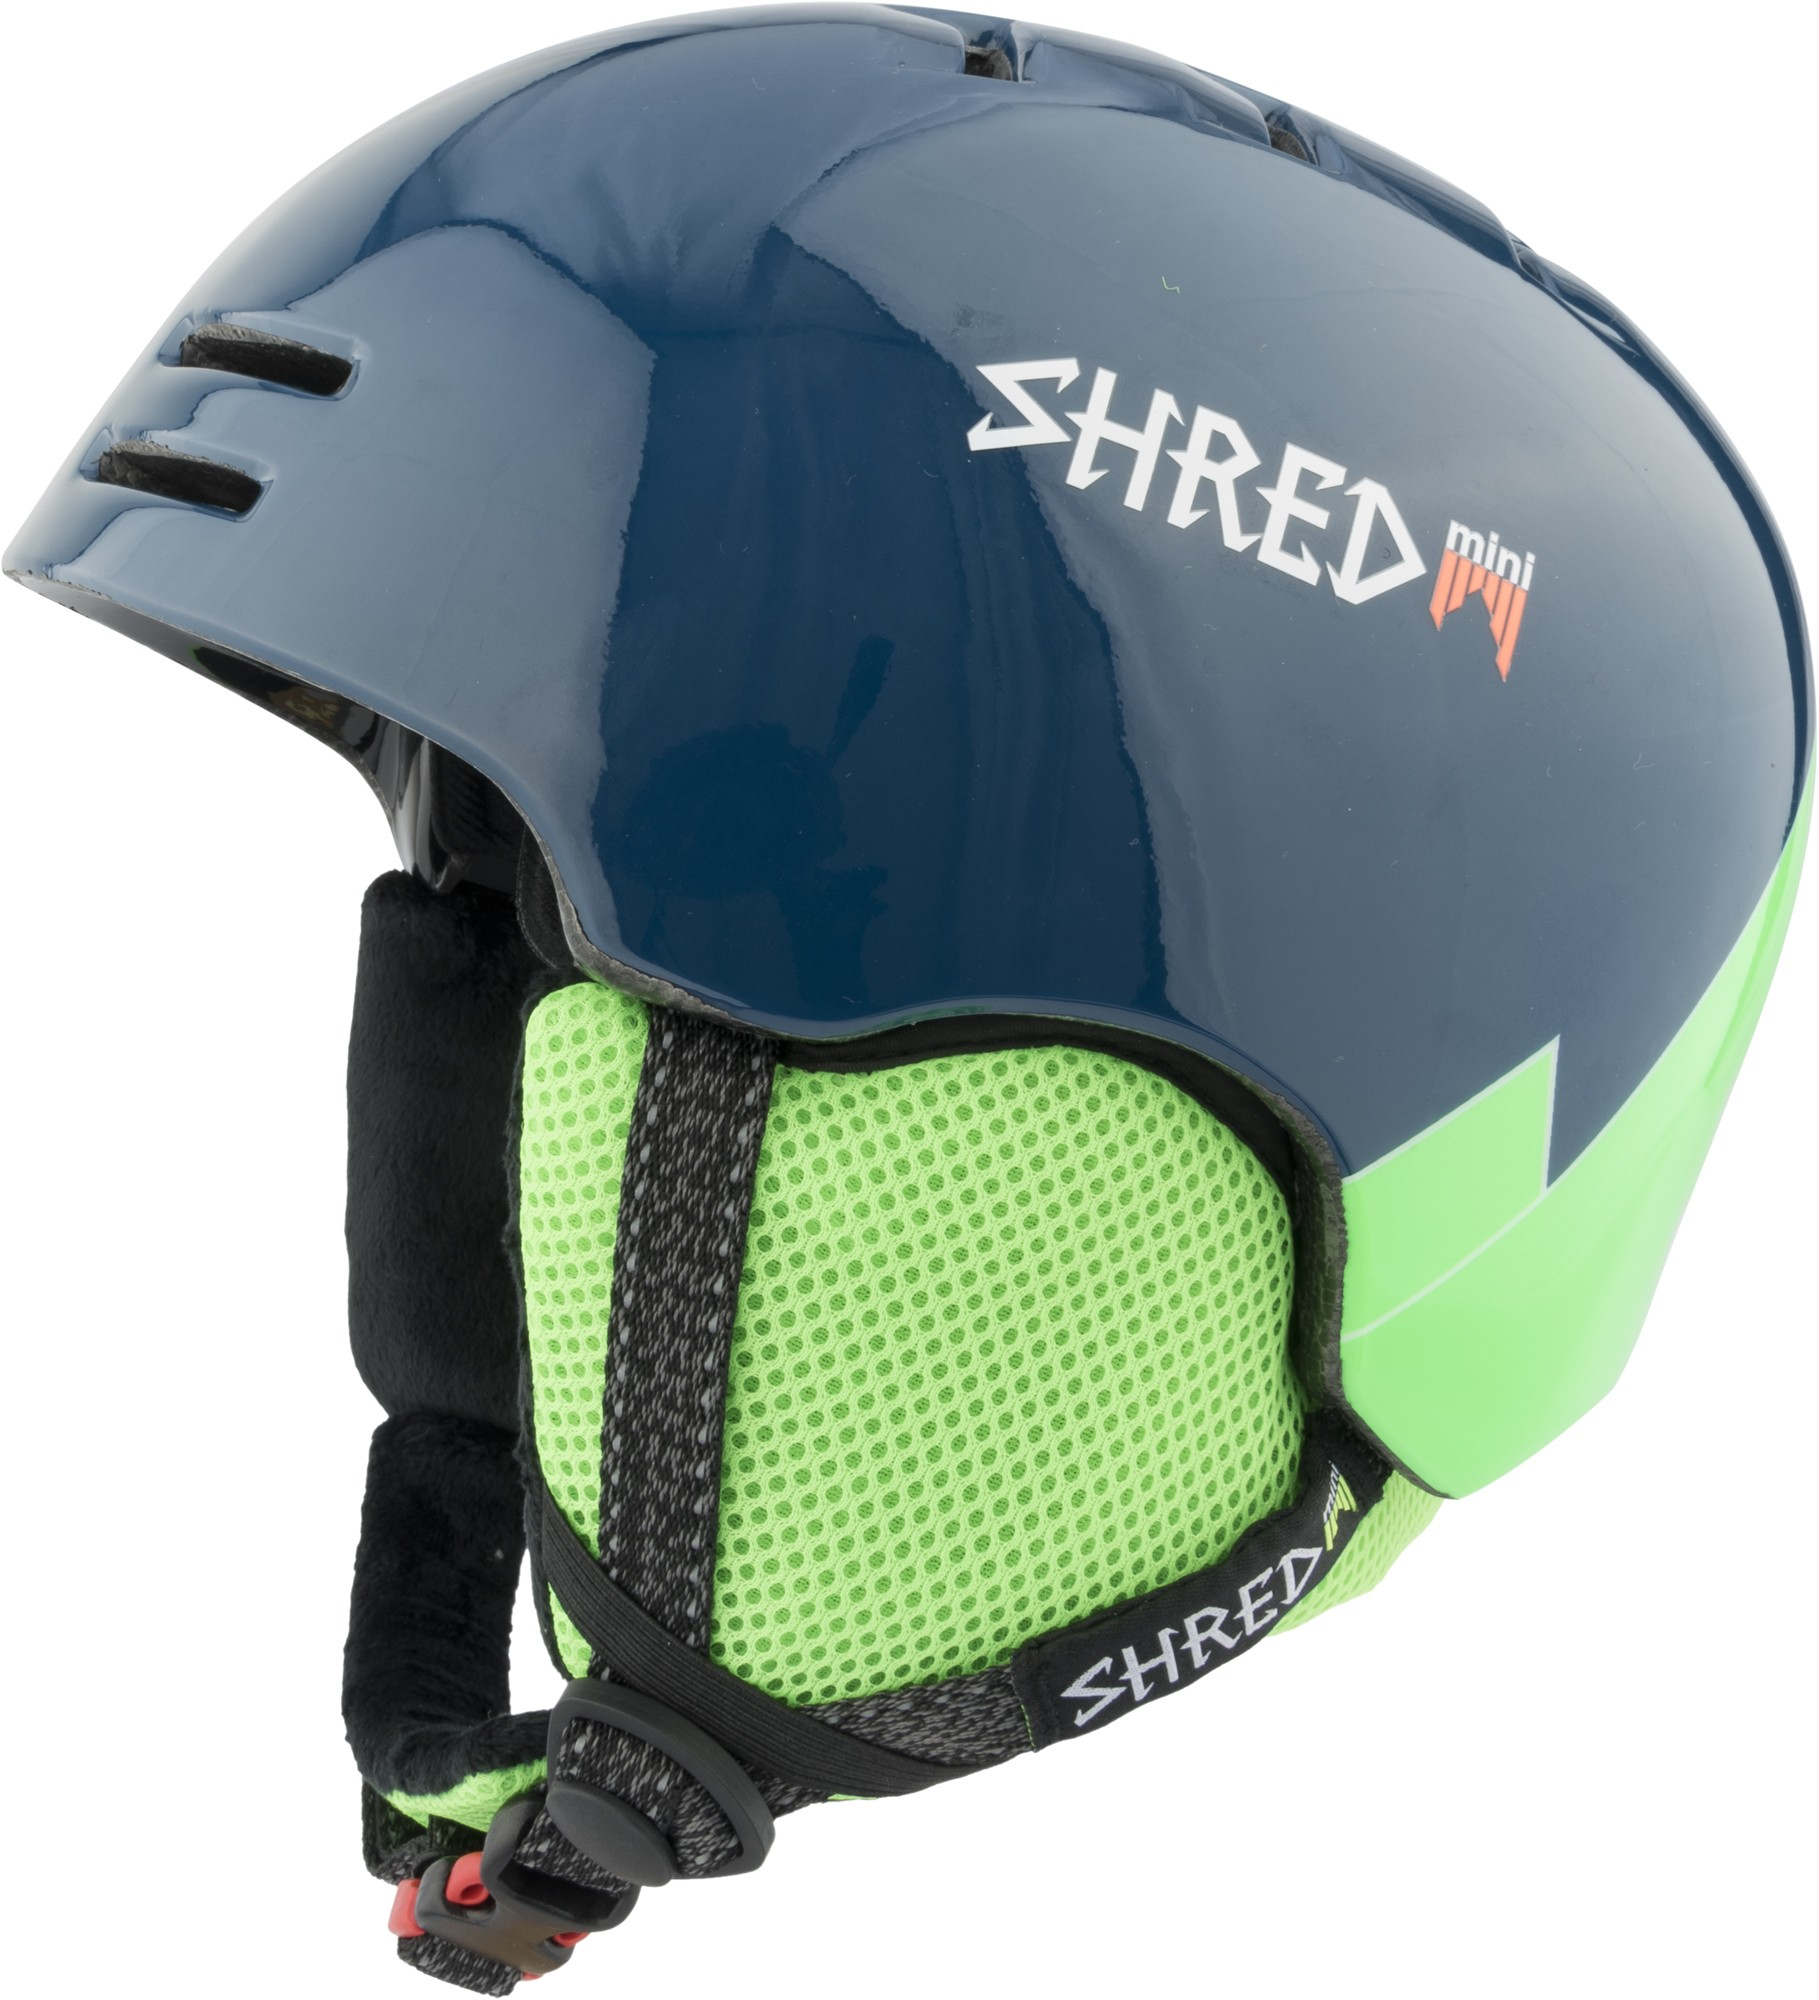 shred slam cap noseason mini wee blue green